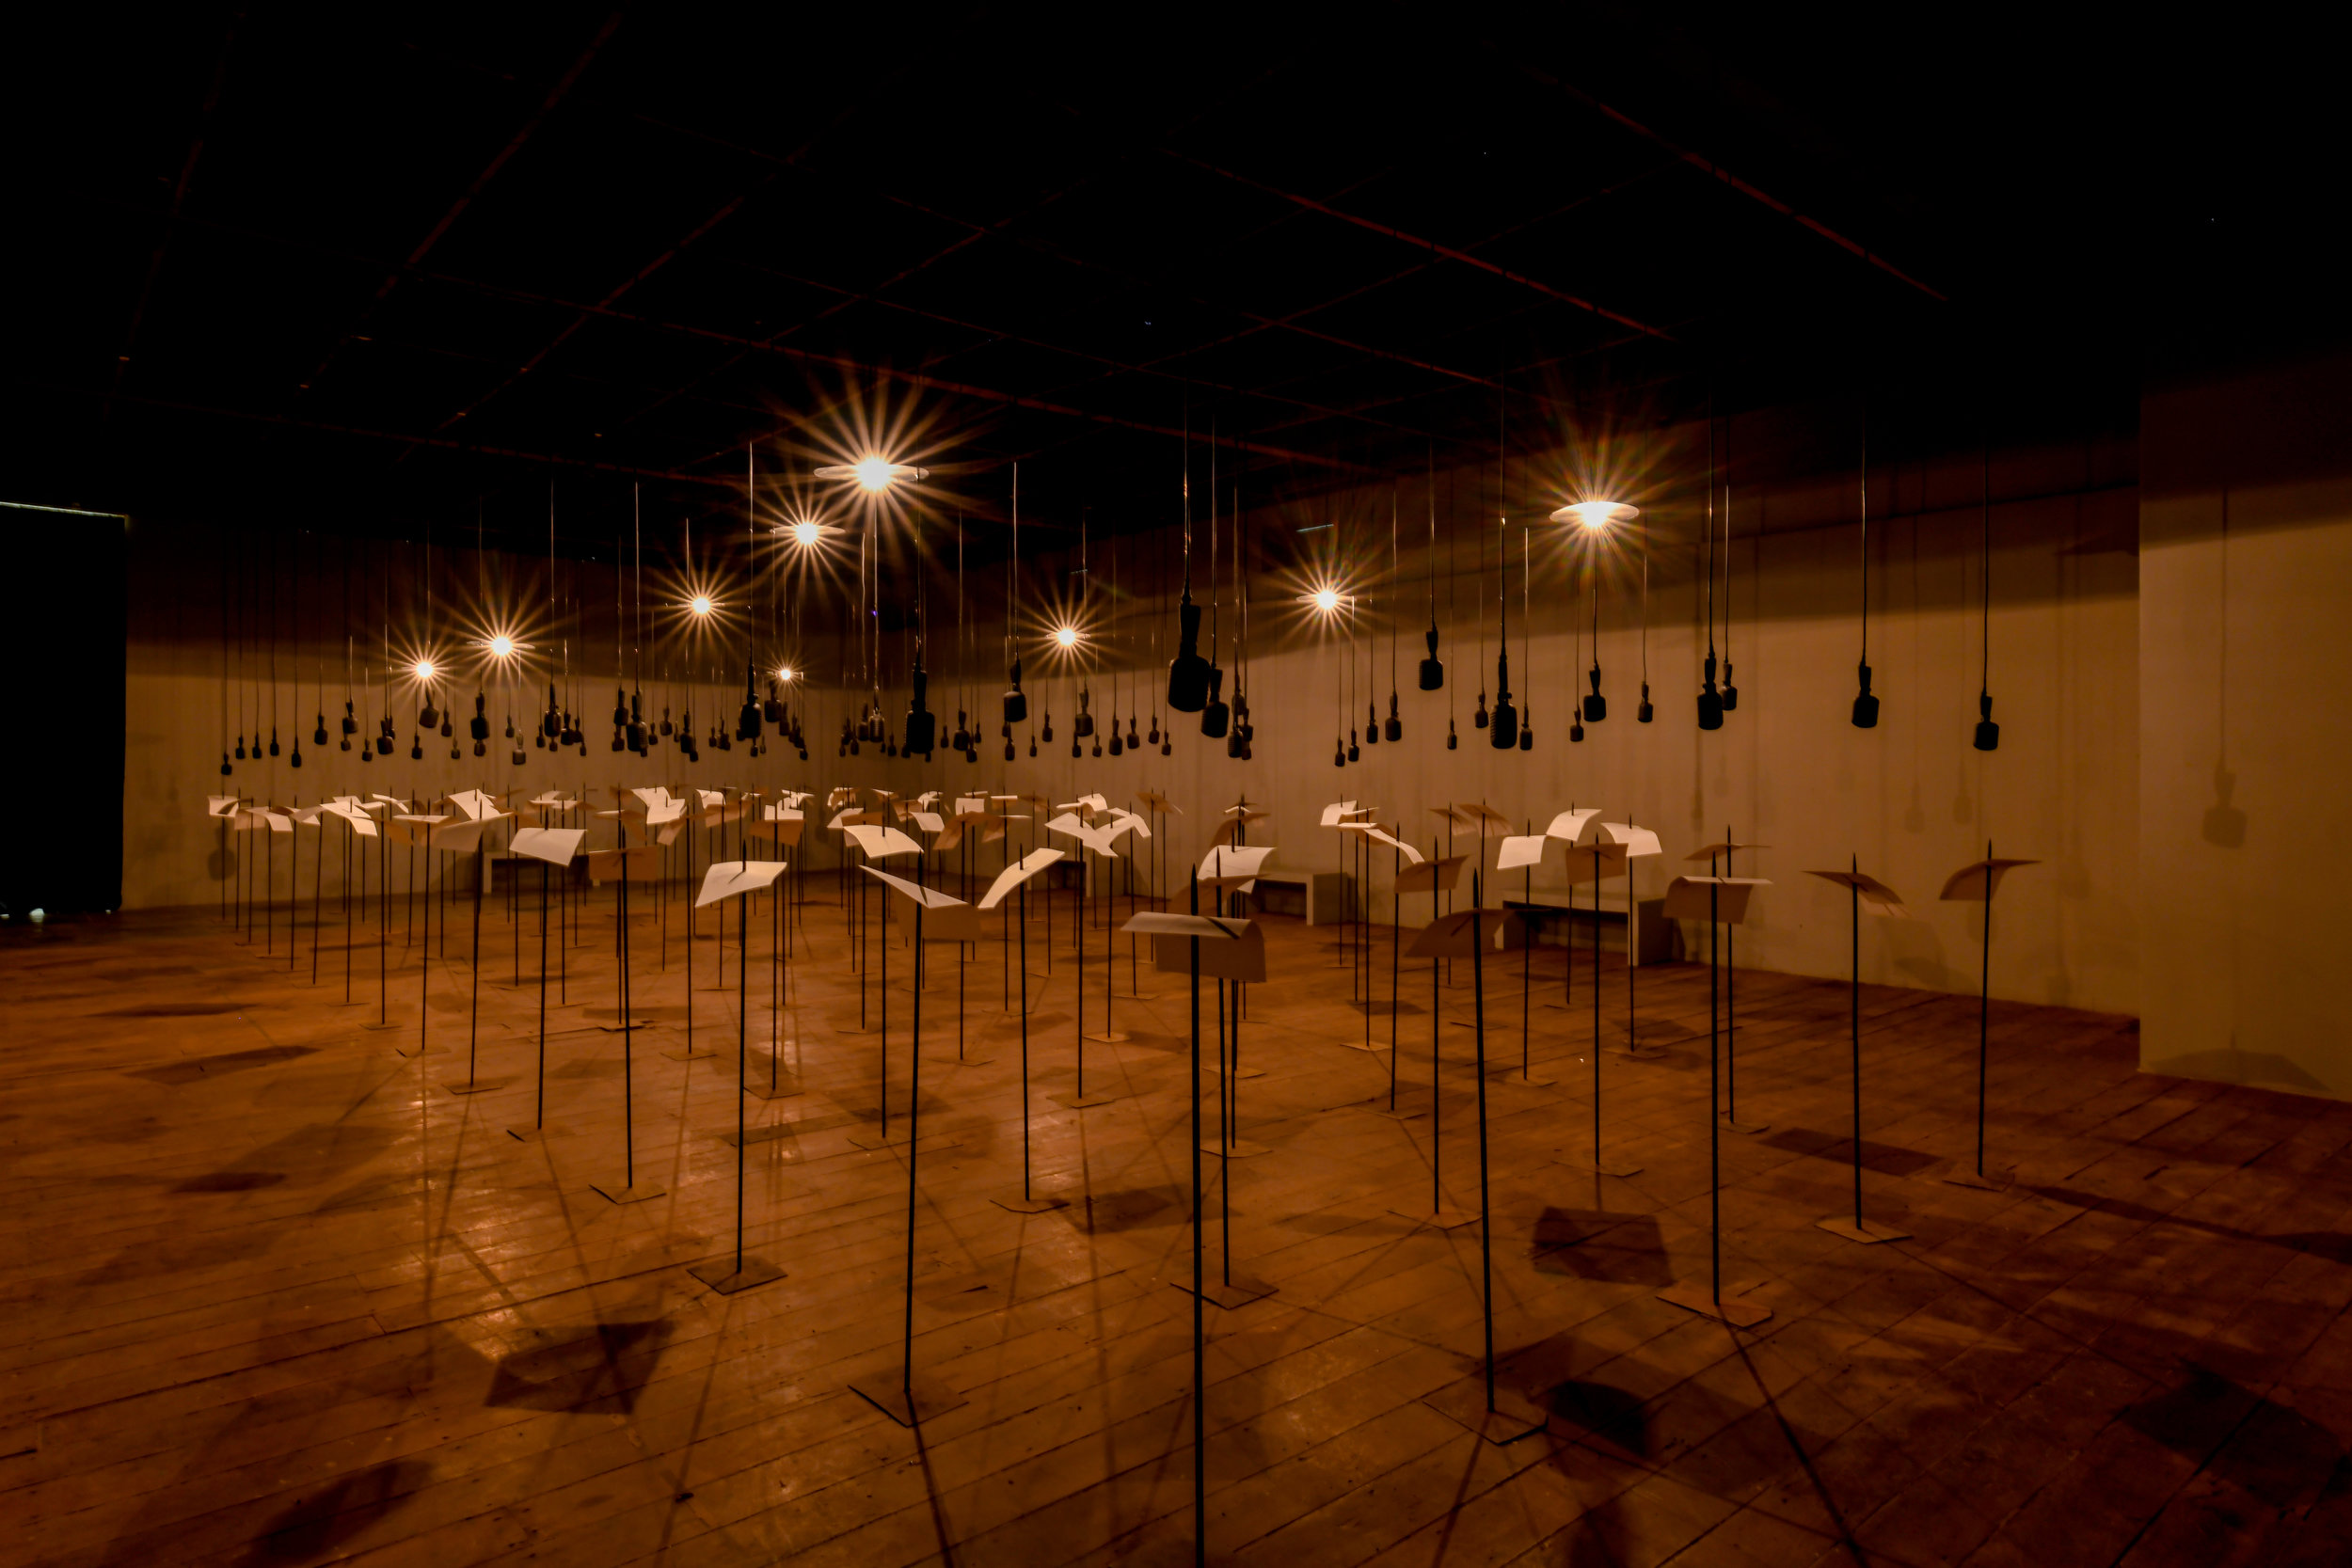 Shilpa Gupta, installation view at Kochi-Muziris Biennale 2018, courtesy of Kochi Biennale Foundation